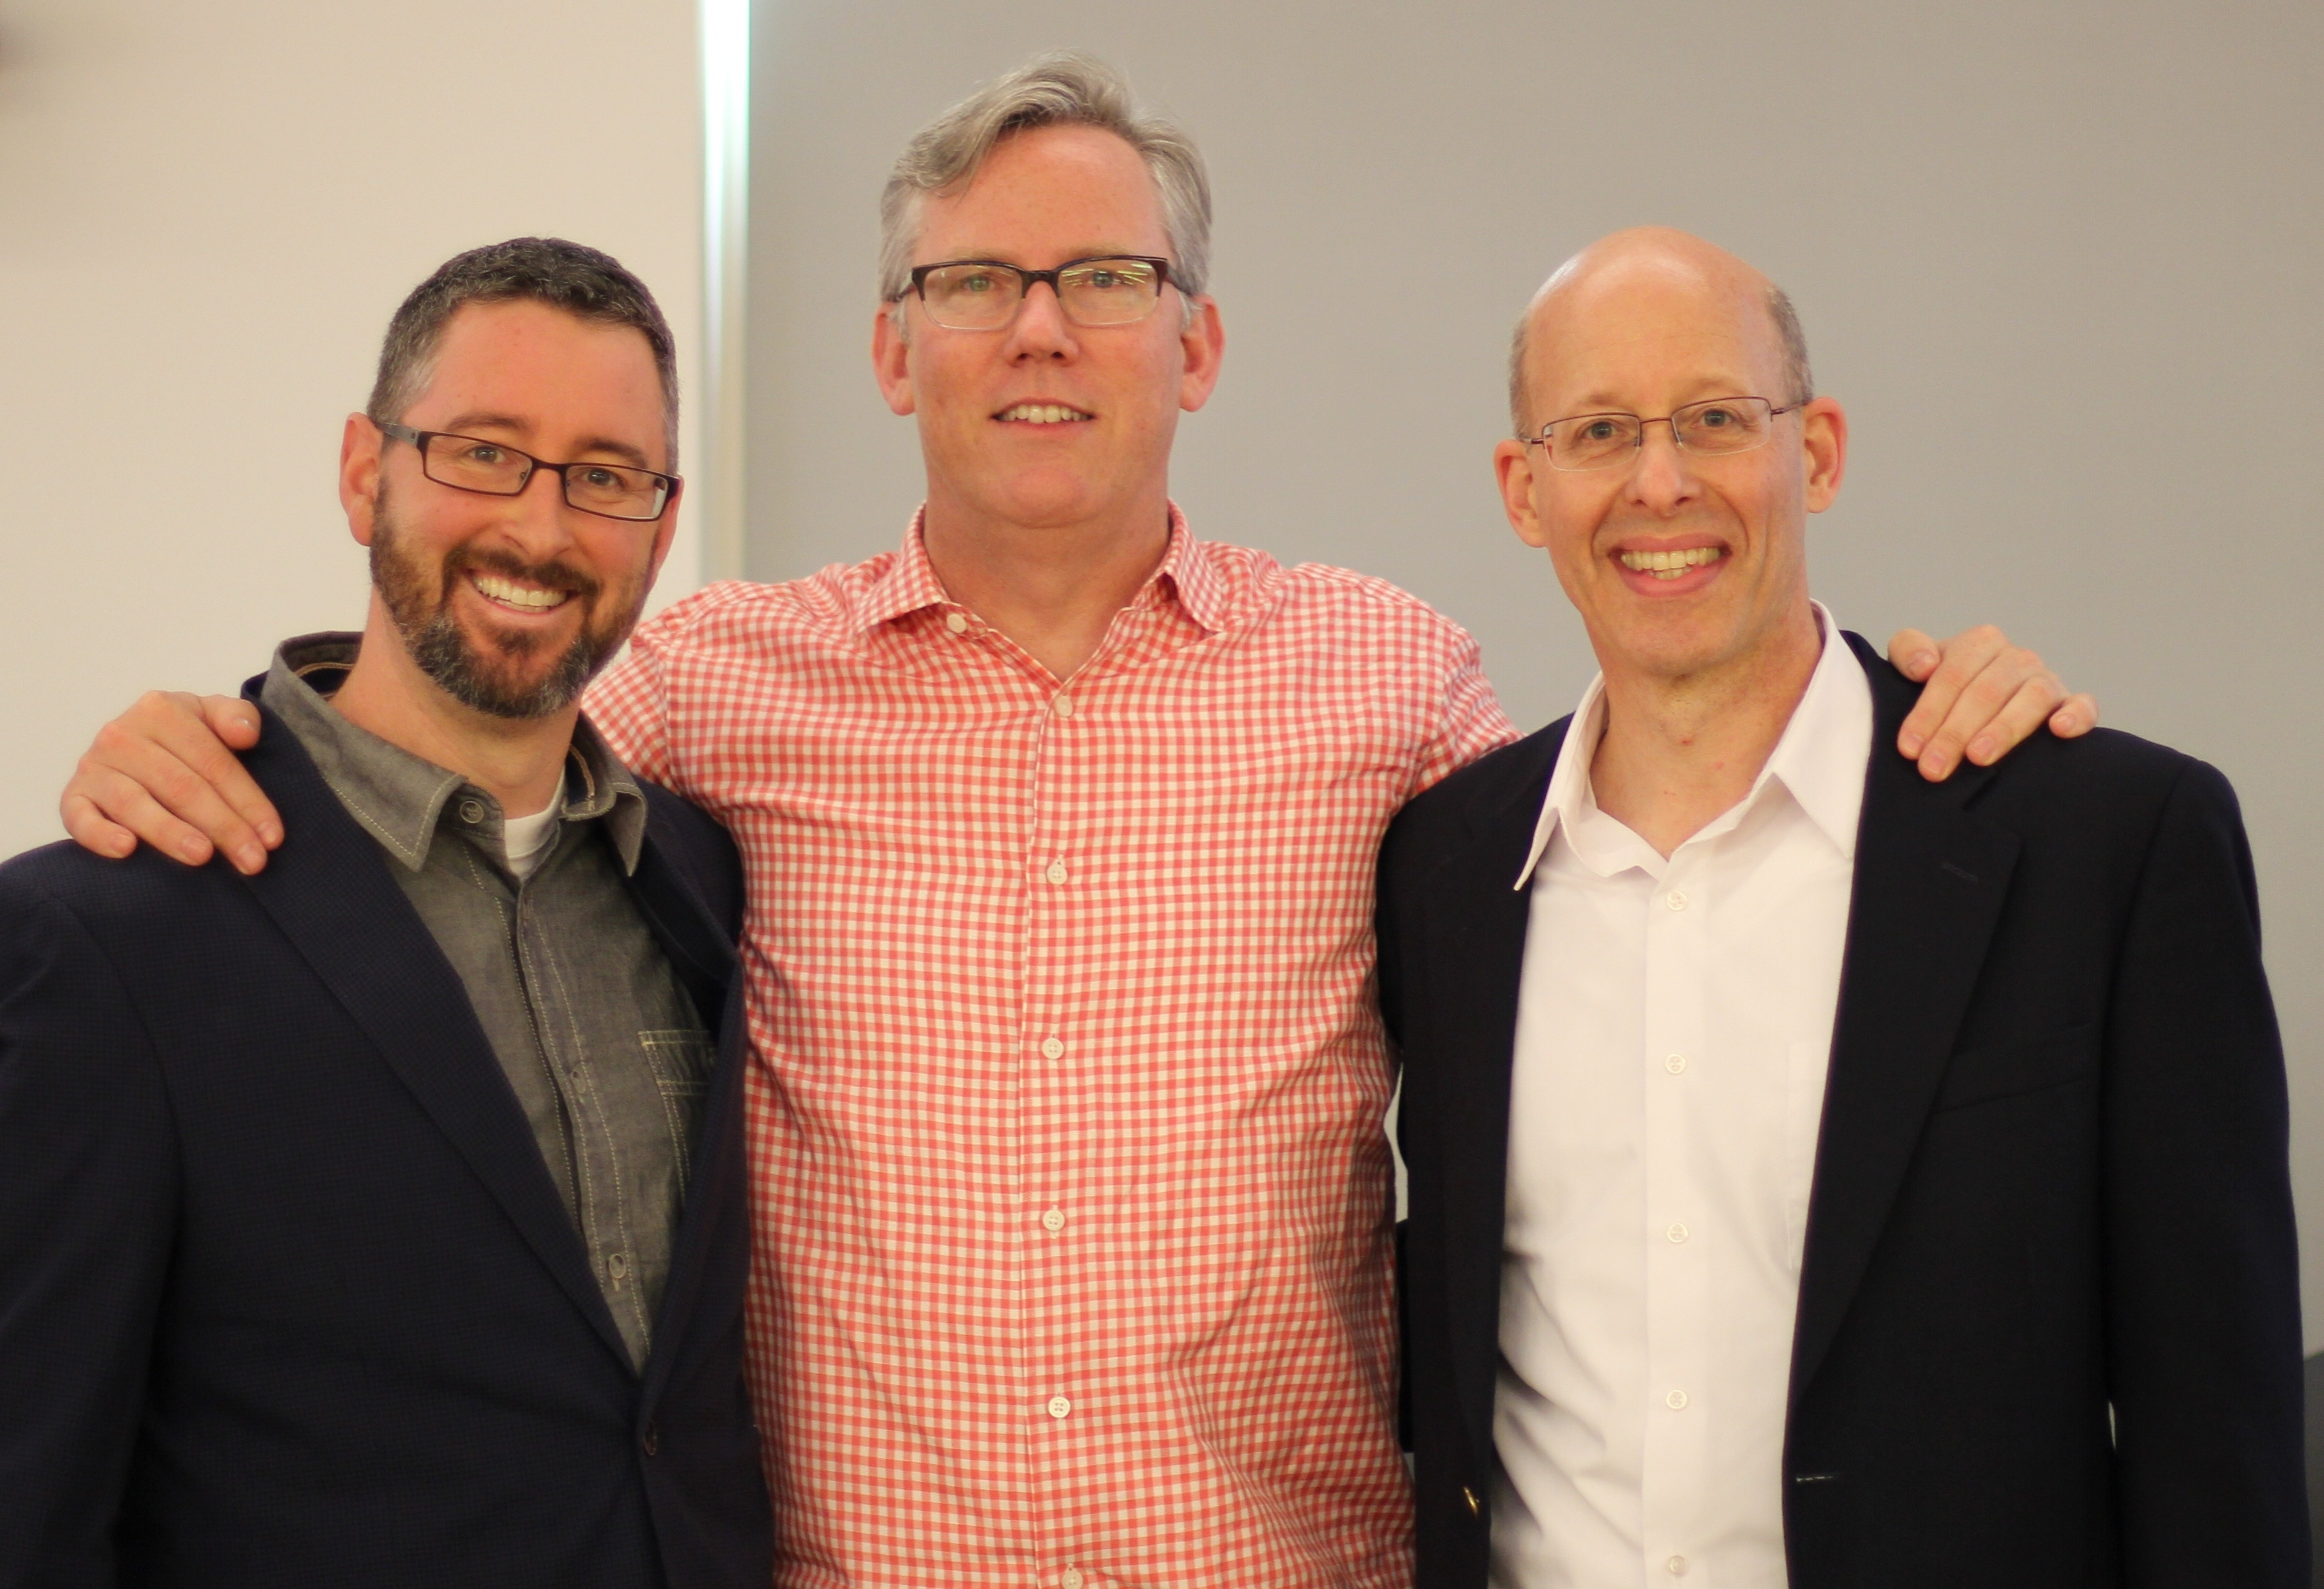 IQ_team_with_Brian_Halligan_at_Hubspot-715918-edited.jpg